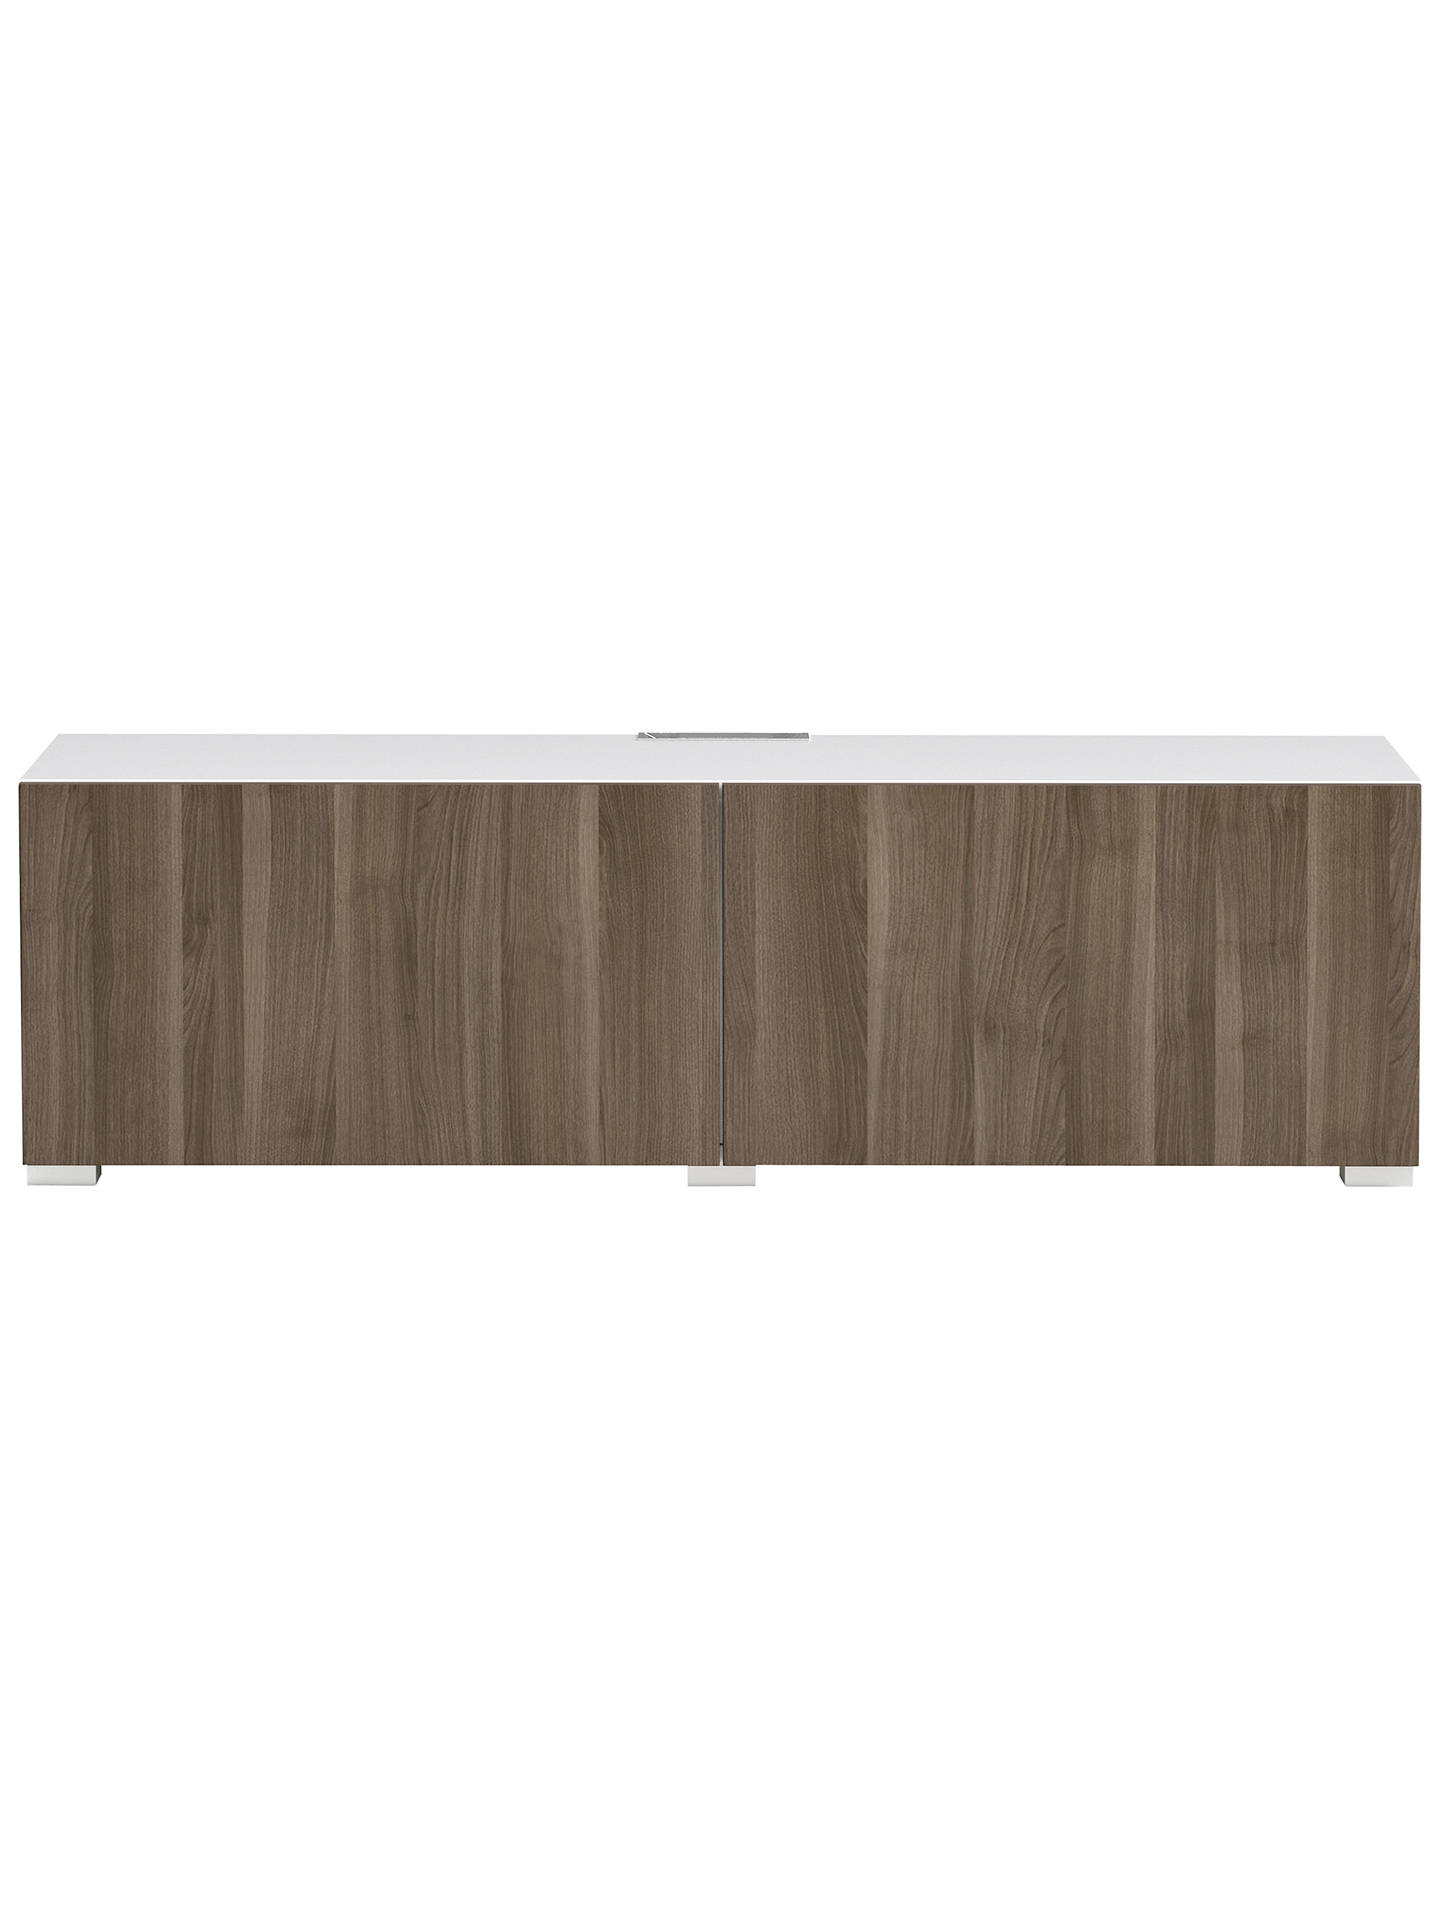 BuyHouse by John Lewis Mix it Media Unit - White frame / Grey ash doors steel doors Online at johnlewis.com